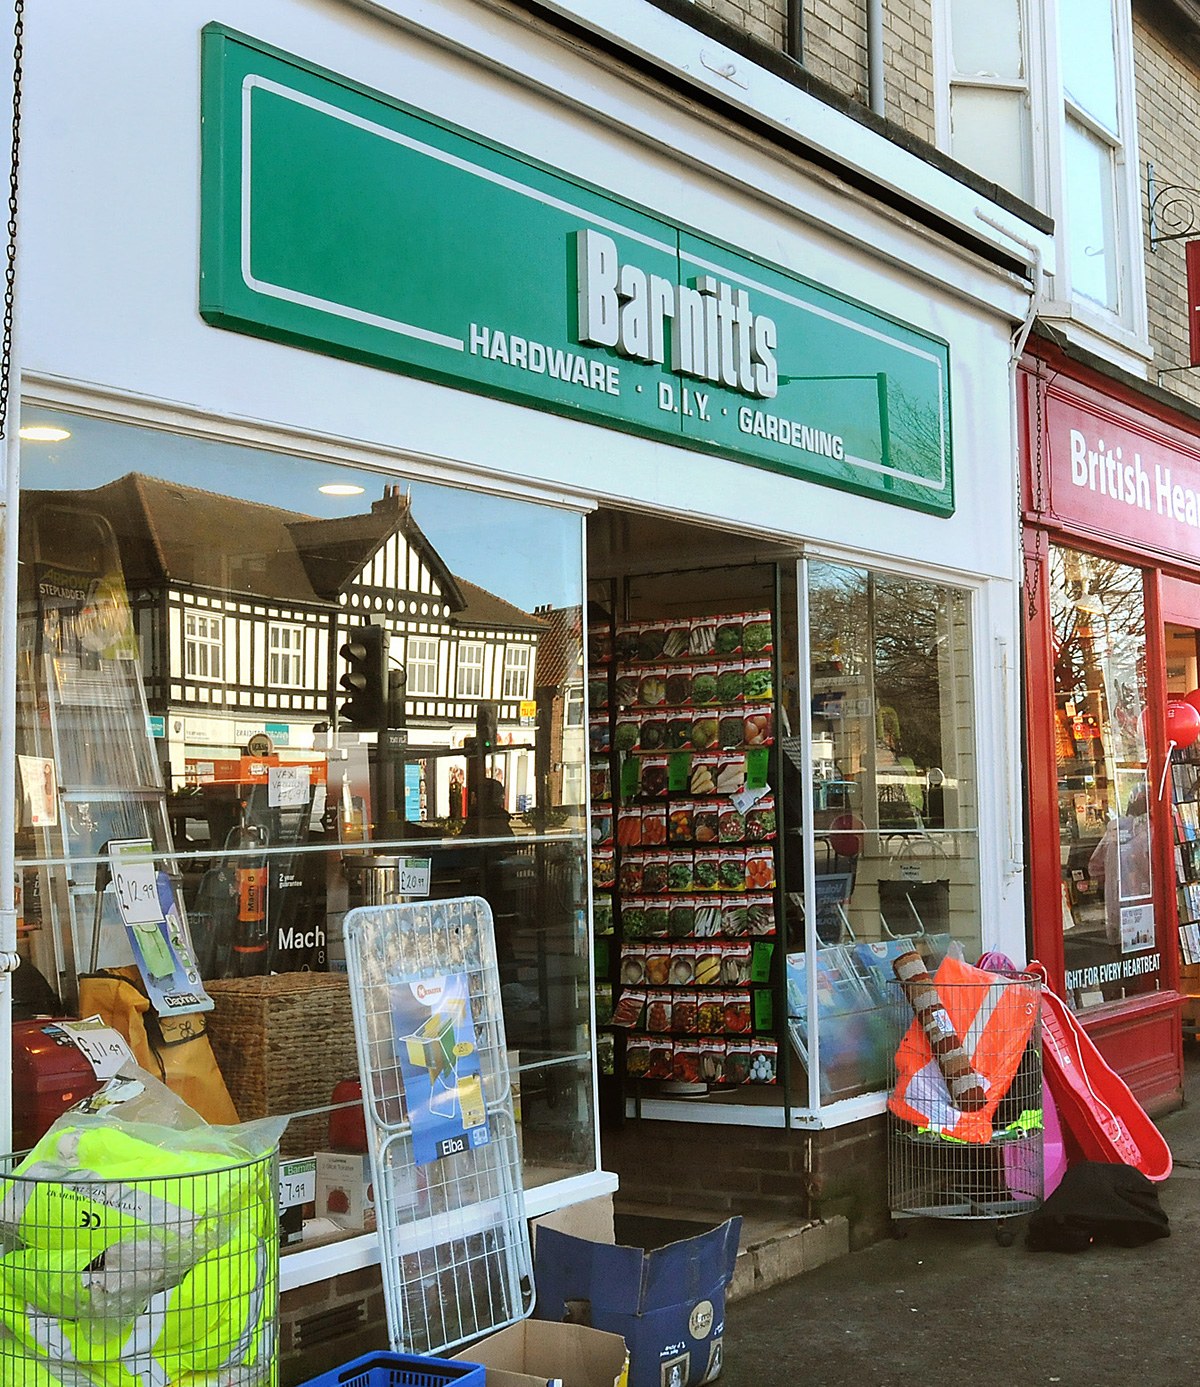 The Barnitts store in Front Street, Acomb